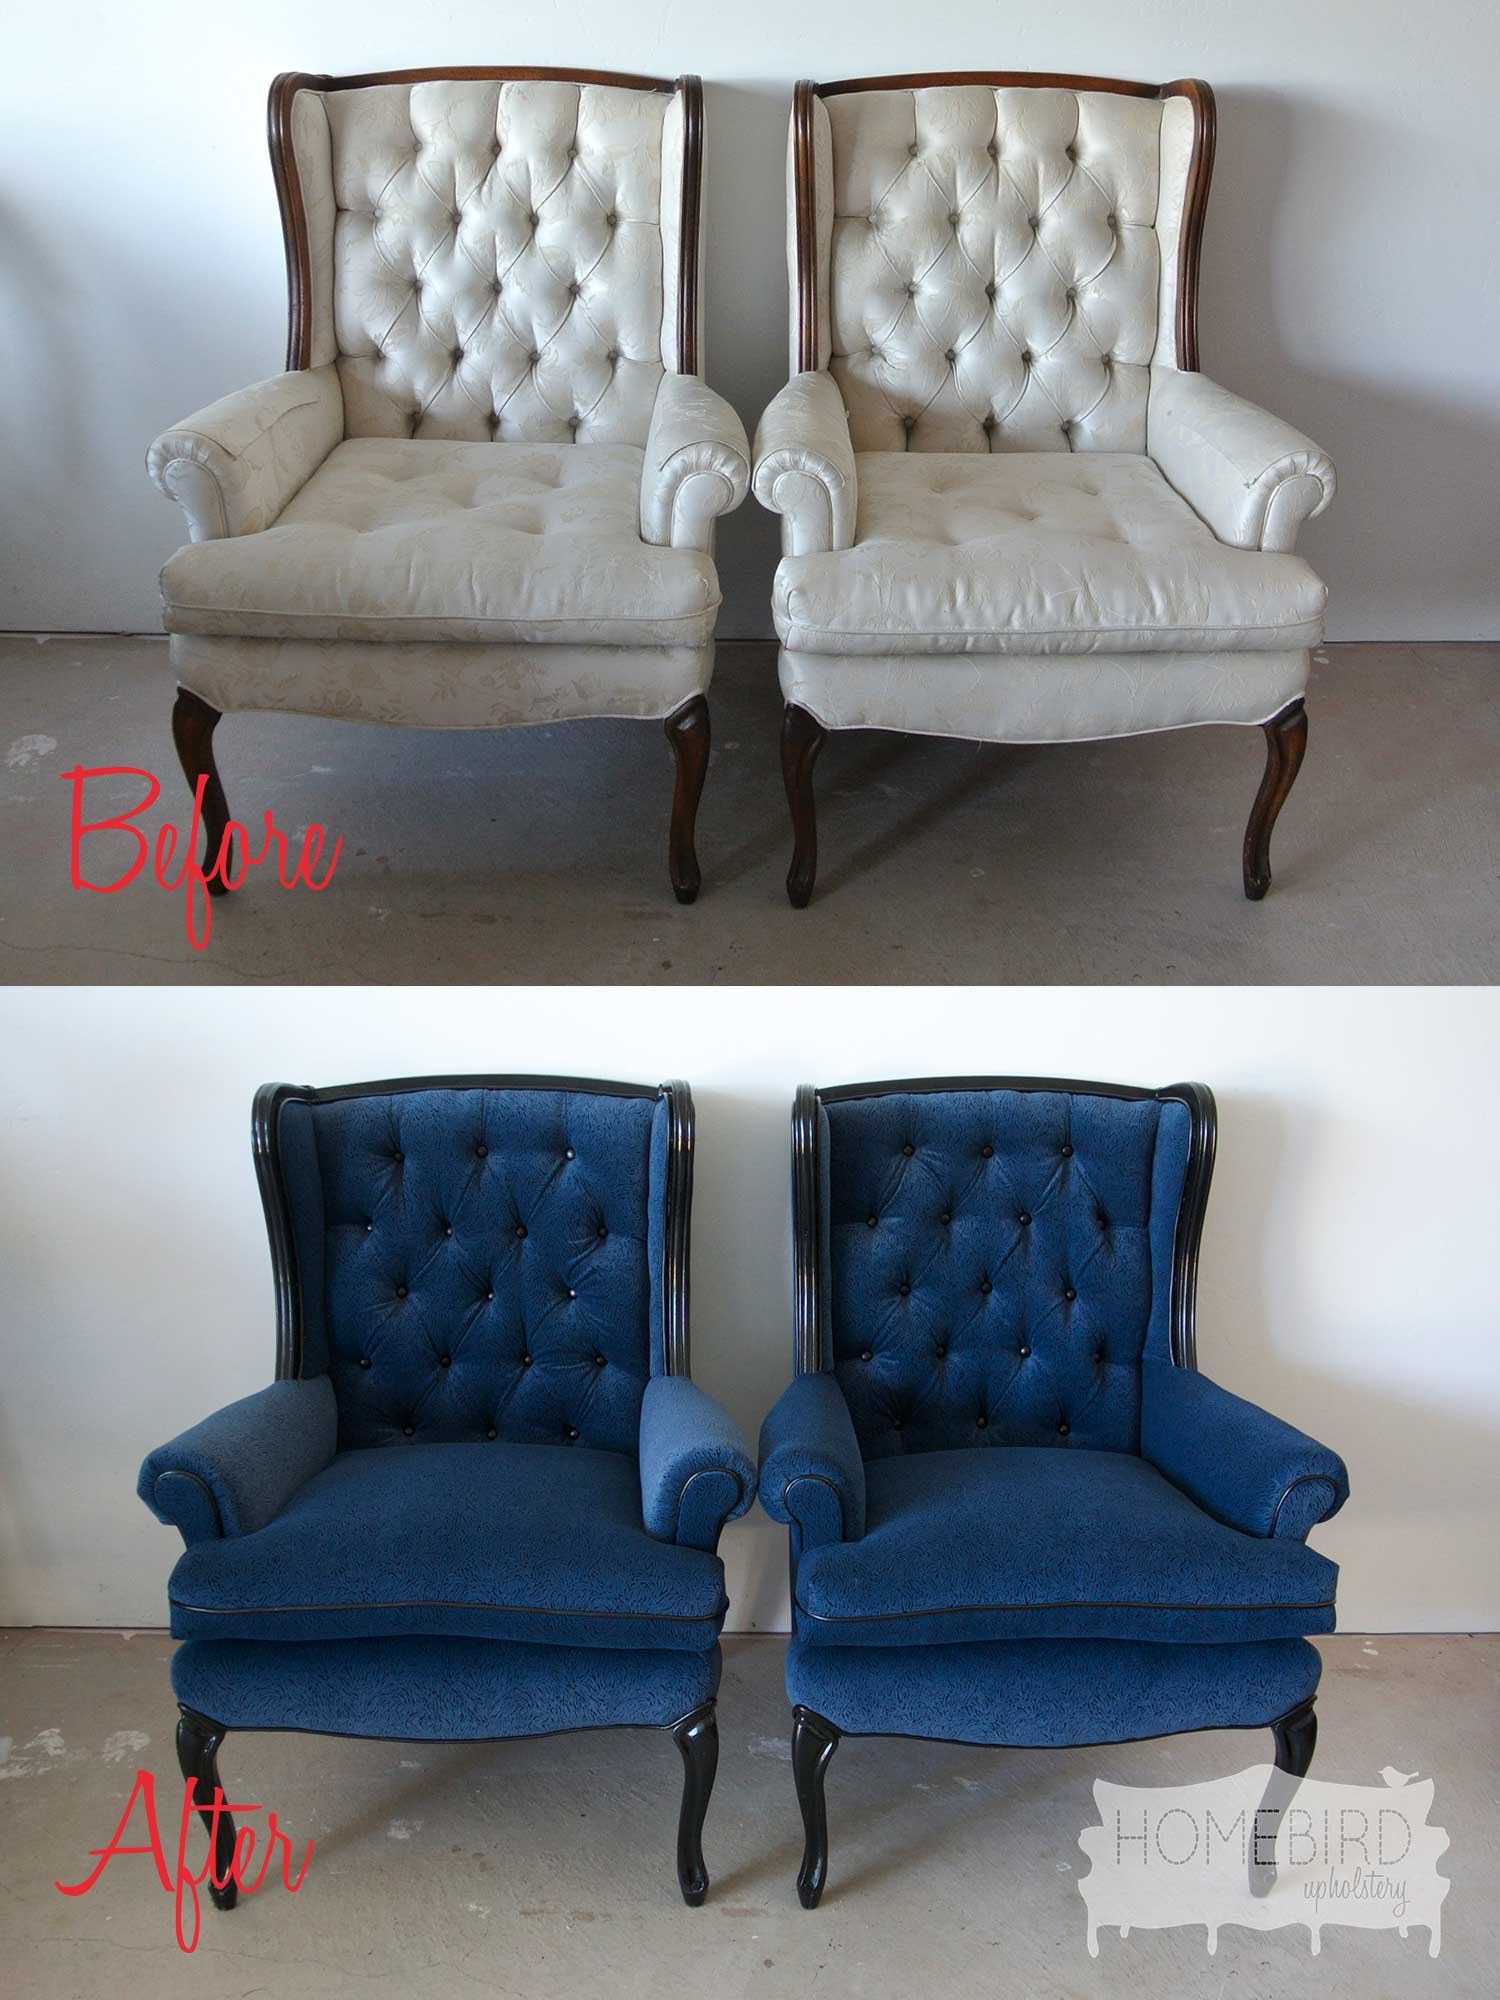 Before & After: Tufted Ladies